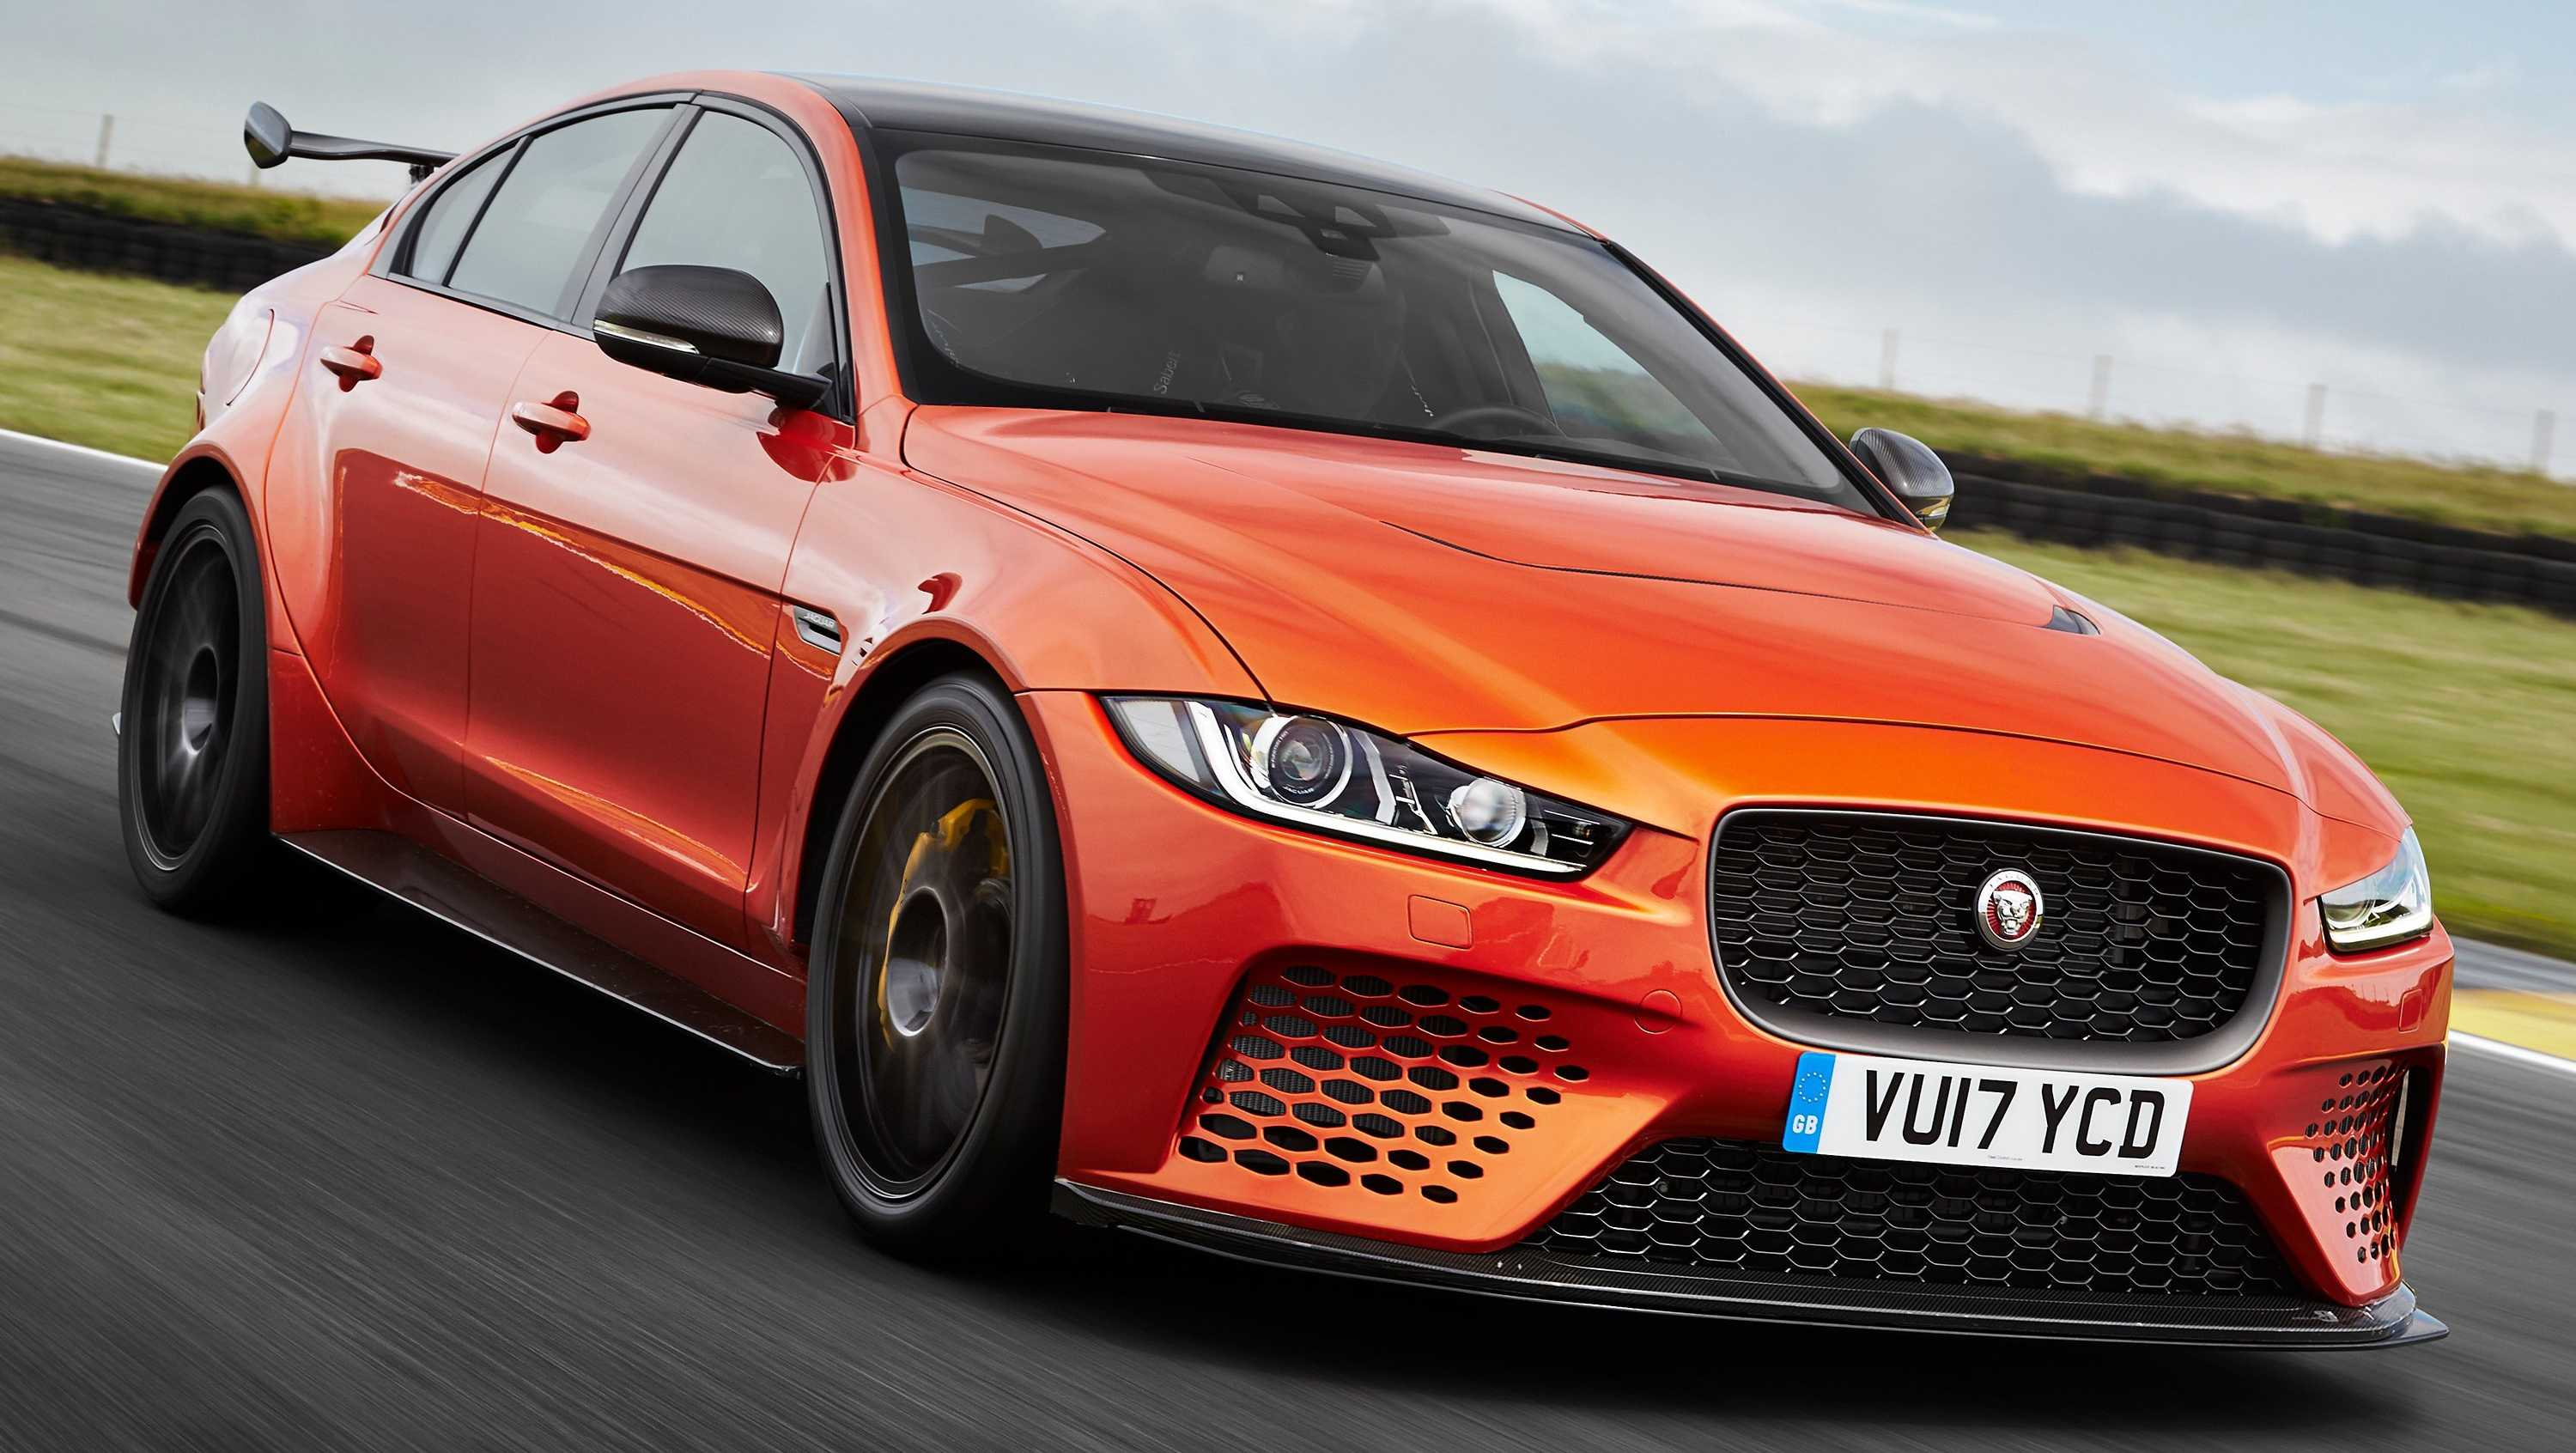 Jaguar will only make 300 of the new 592-horsepower Jaguar XE SV Project 8, which can go from zero-to-60 miles an hour in just 3.3 seconds.